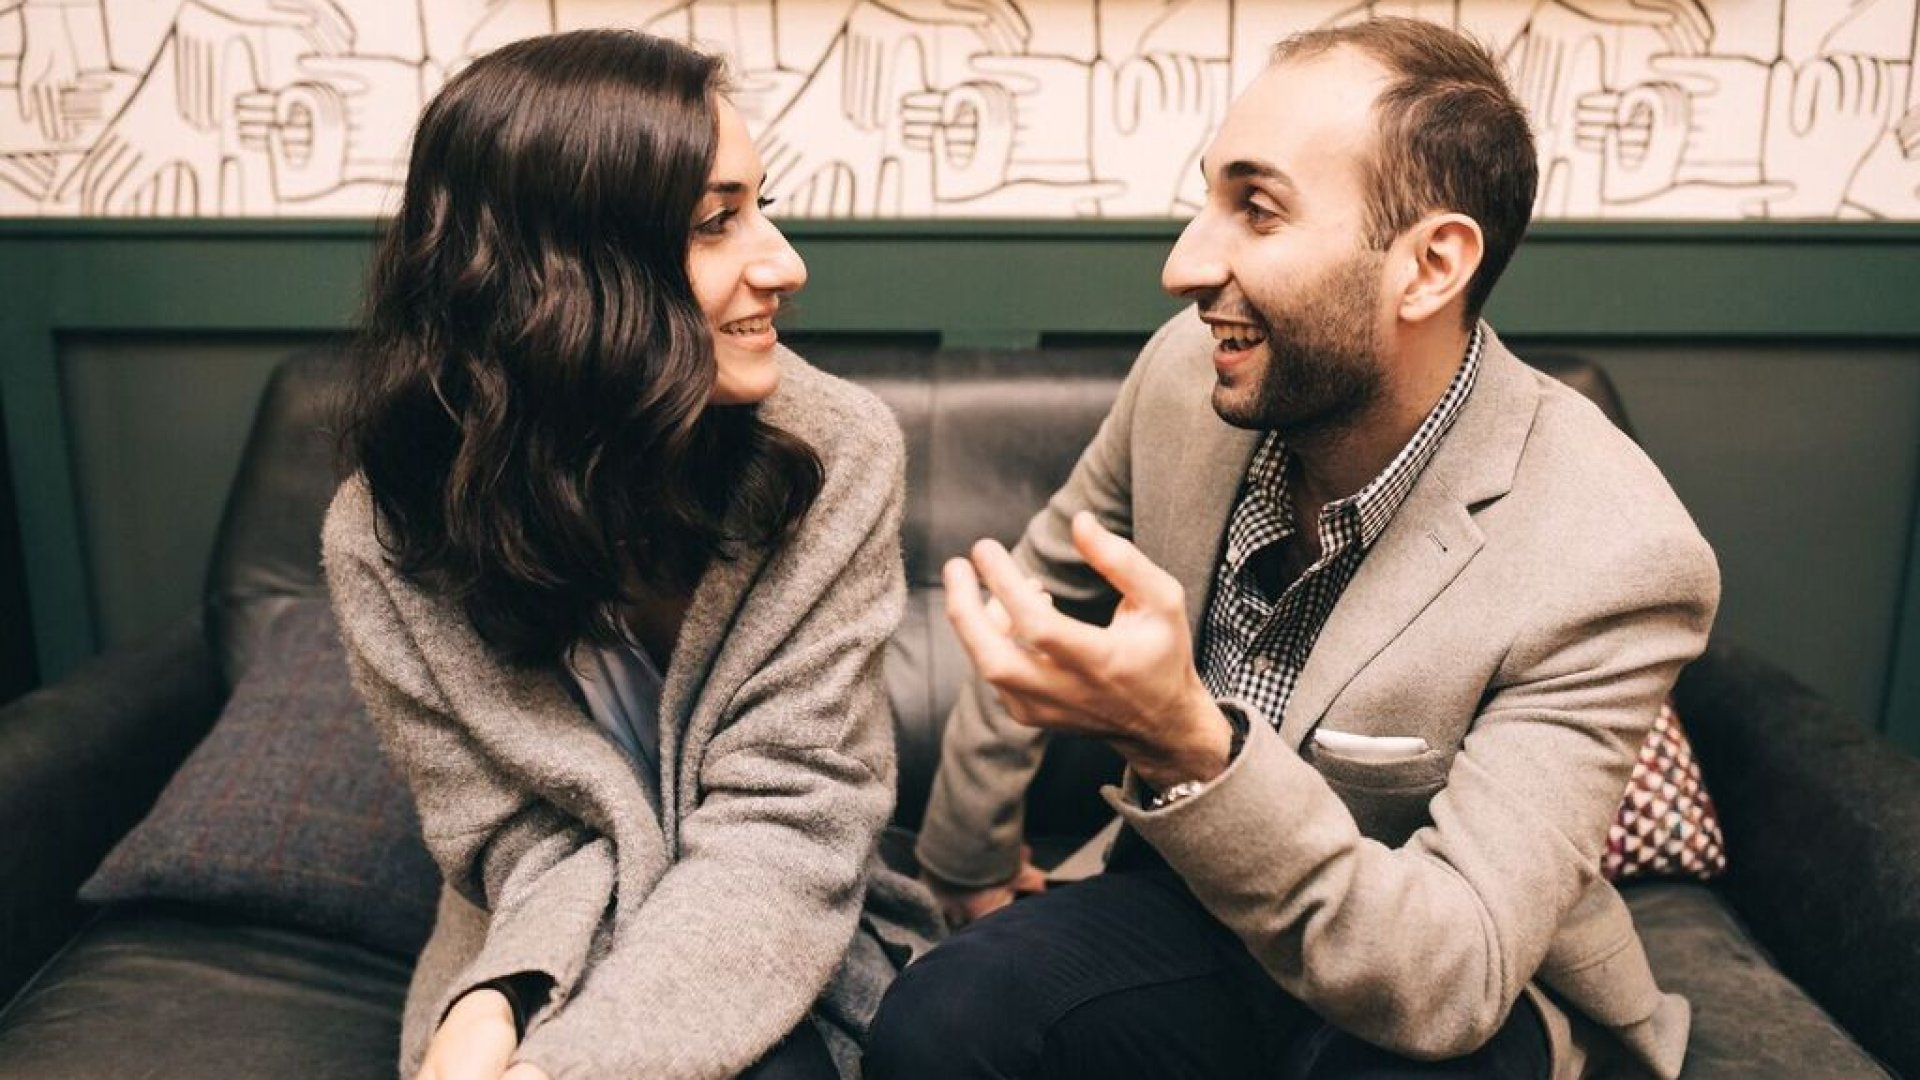 Laura and Michael J. Dweck, co-founders of Basic Outfitters, talk about their company.